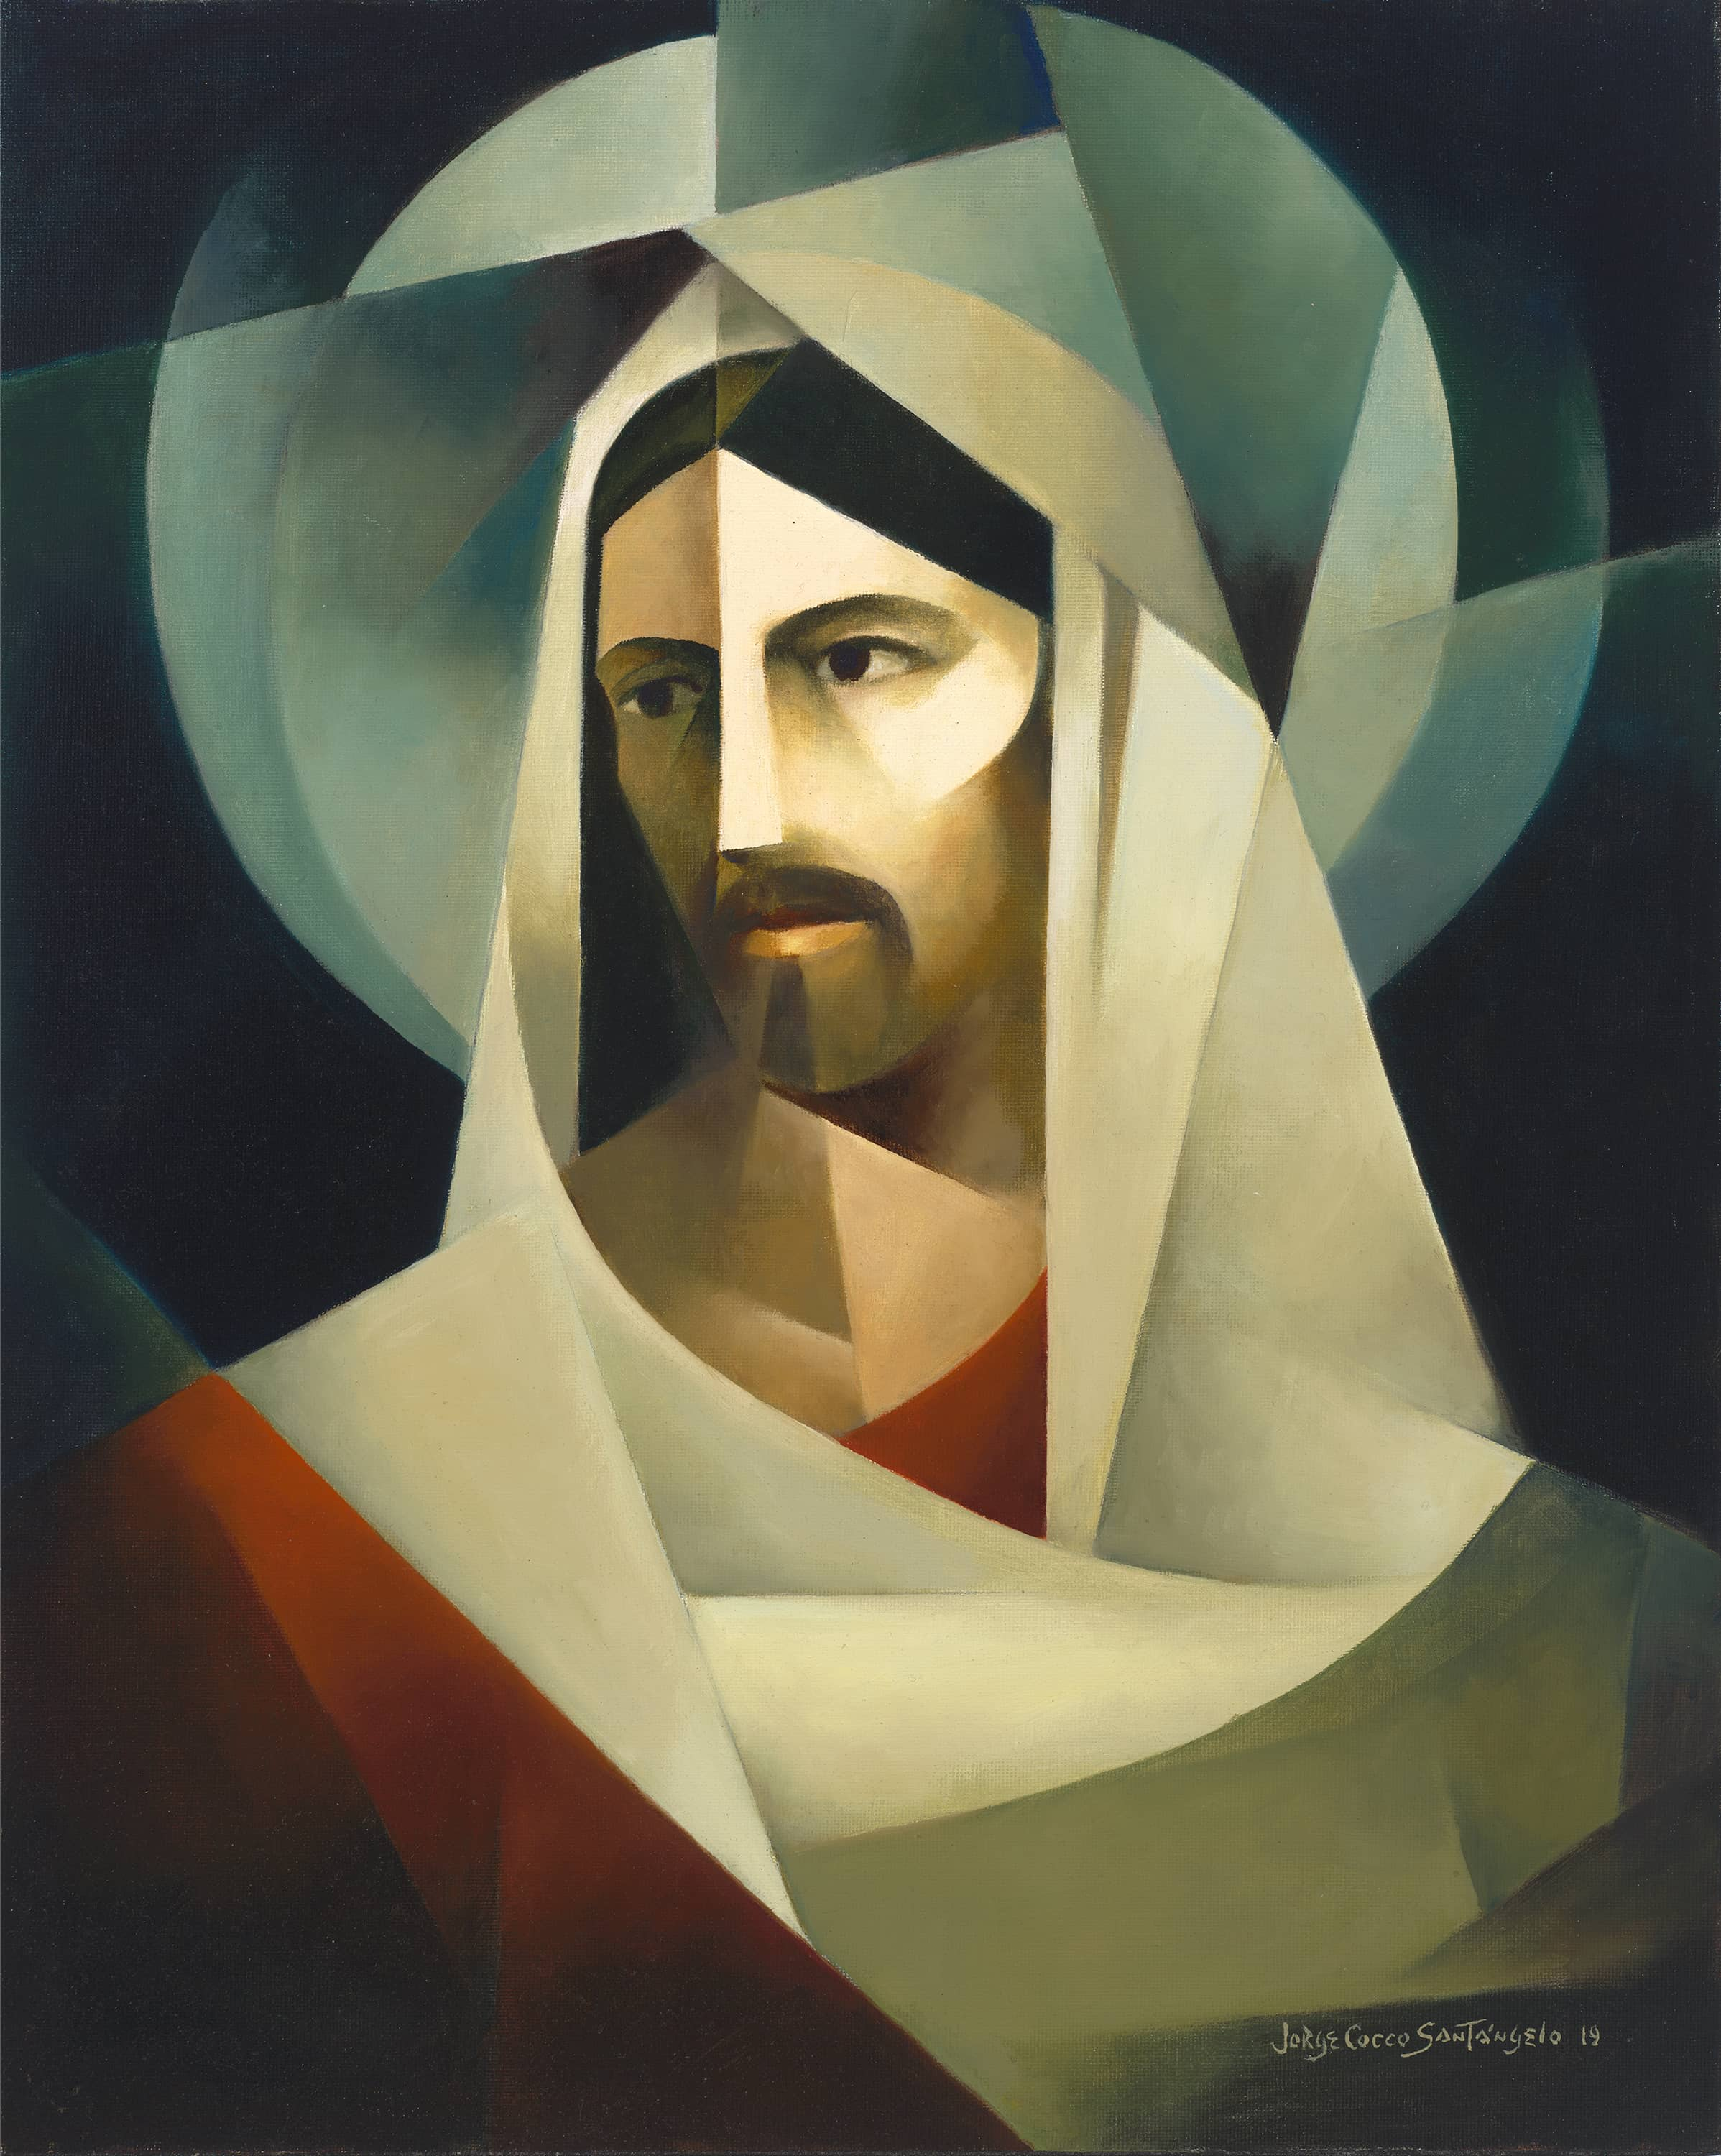 A painting of Jesus Christ done in the sacrocubism style of Jorge Cocco Santangelo.